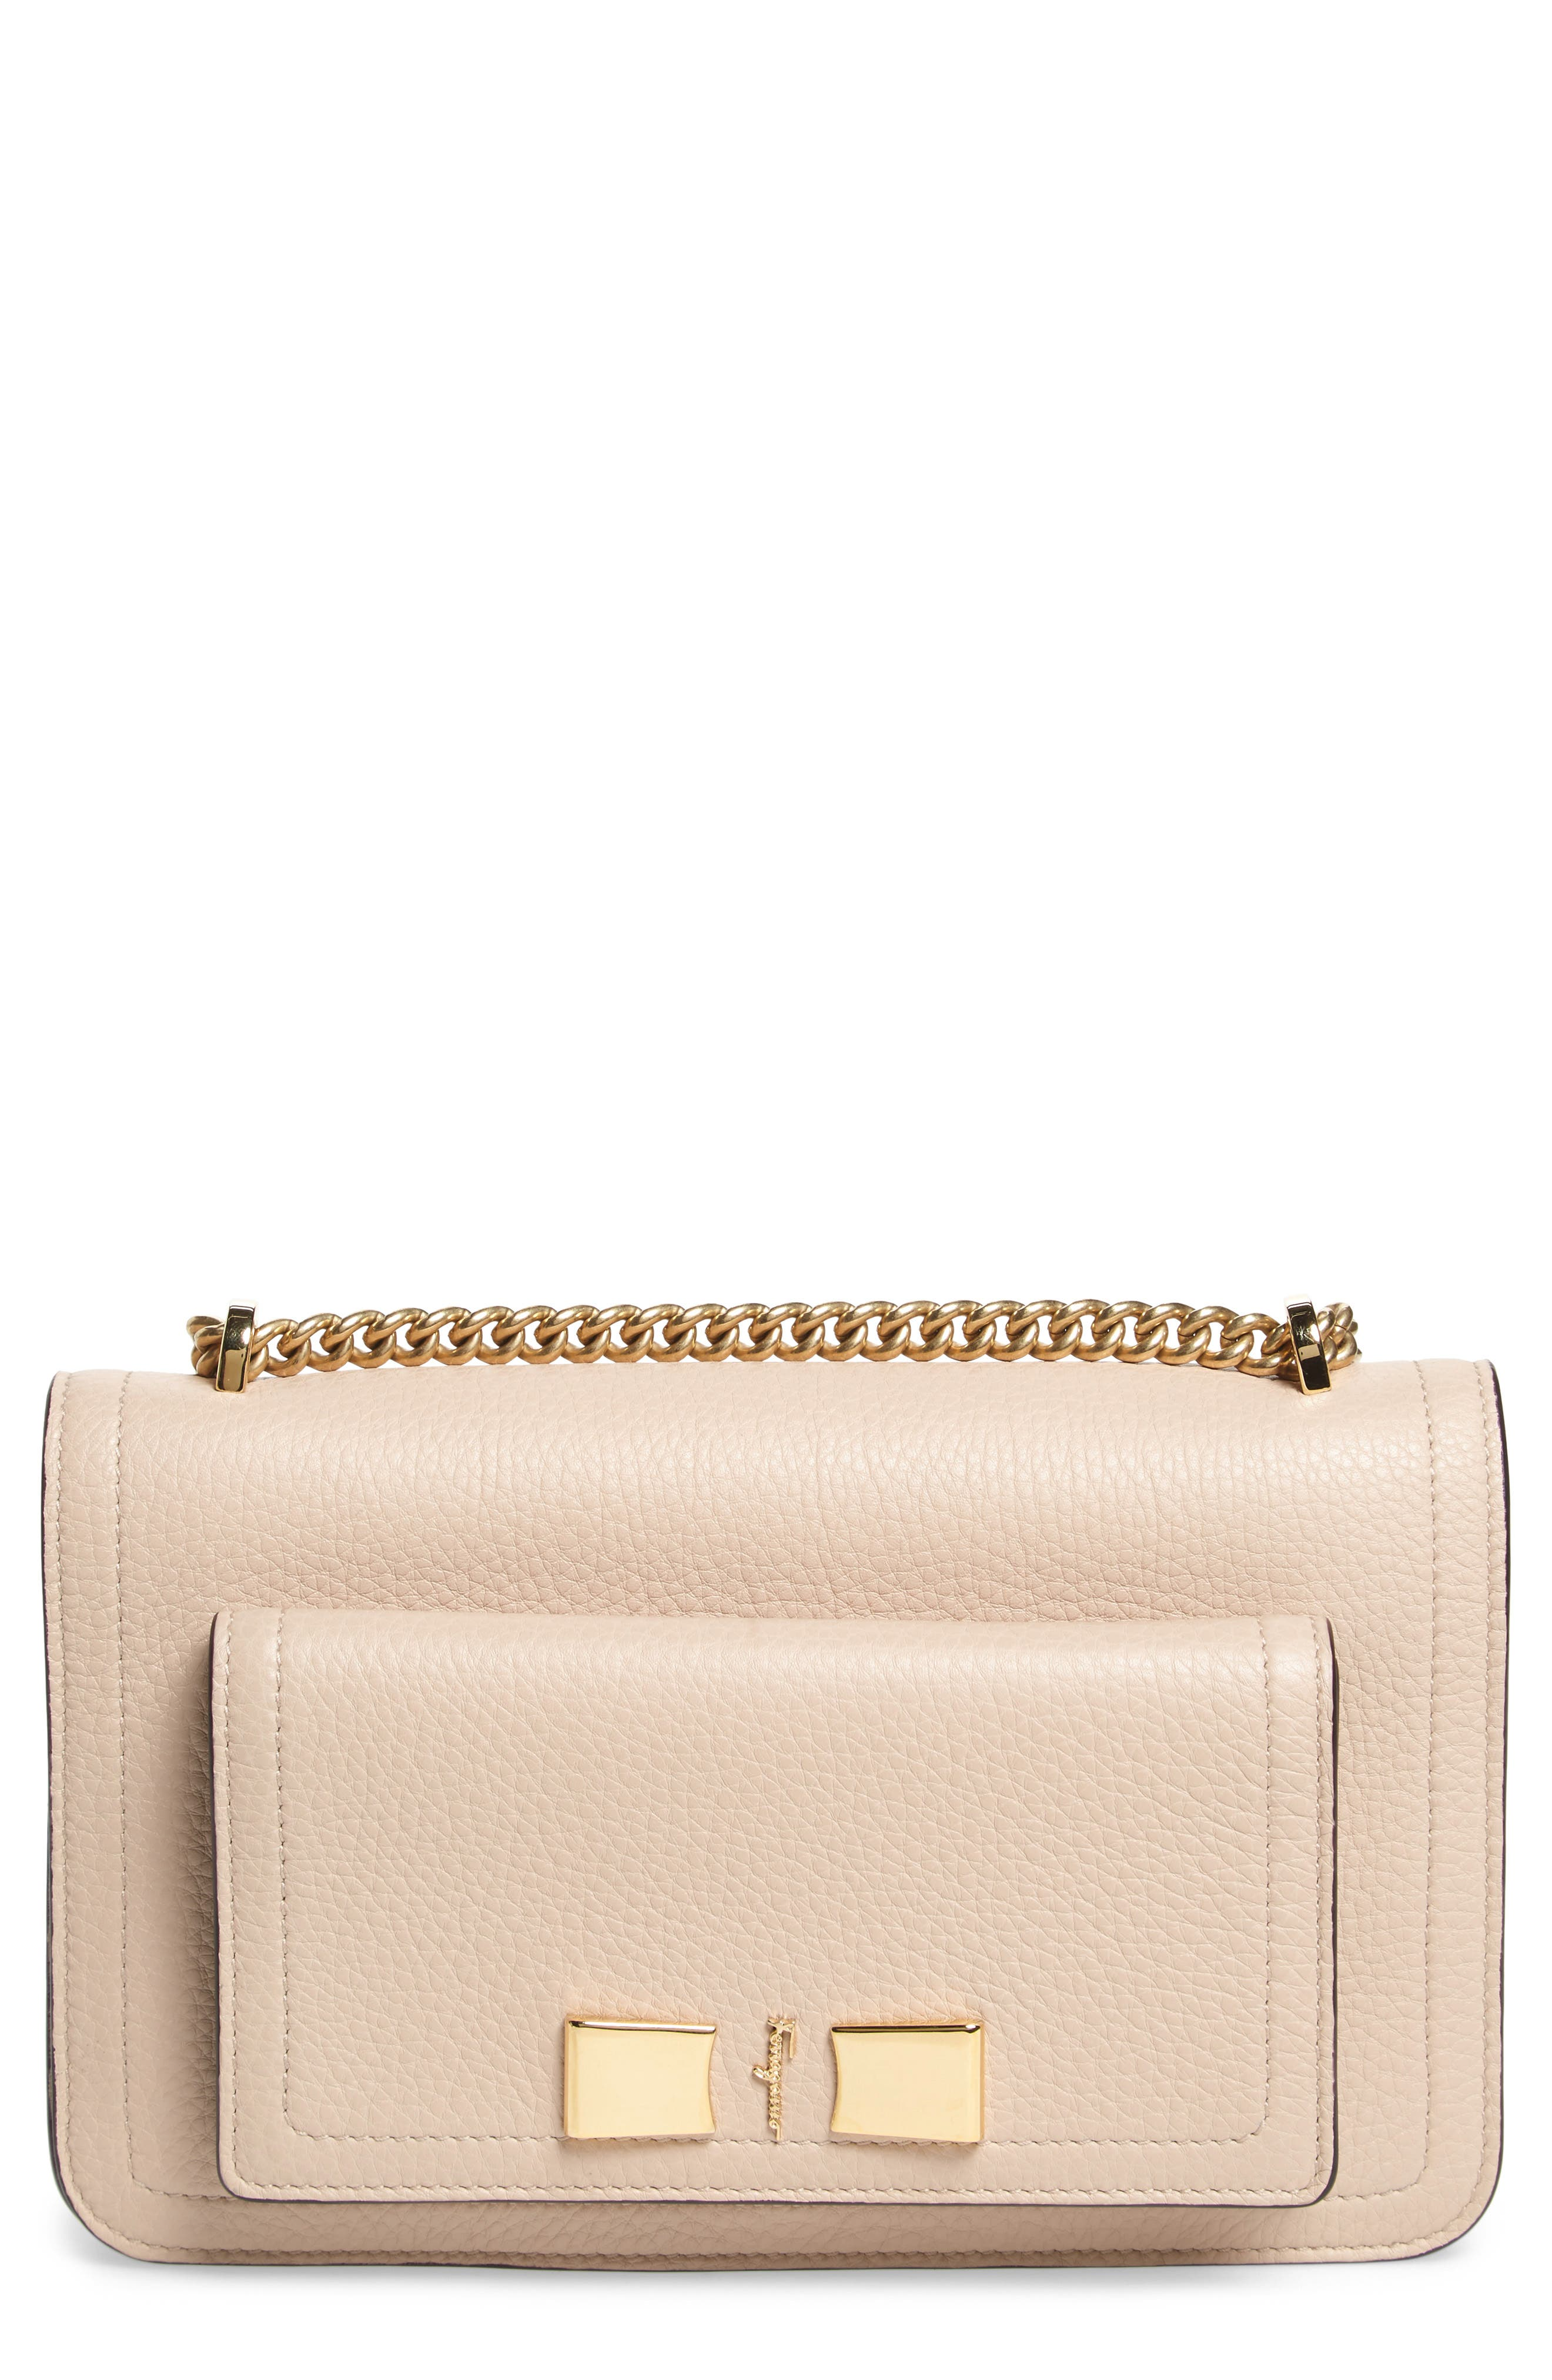 Salvatore Ferragamo Pebbled Leather Chain Crossbody Bag